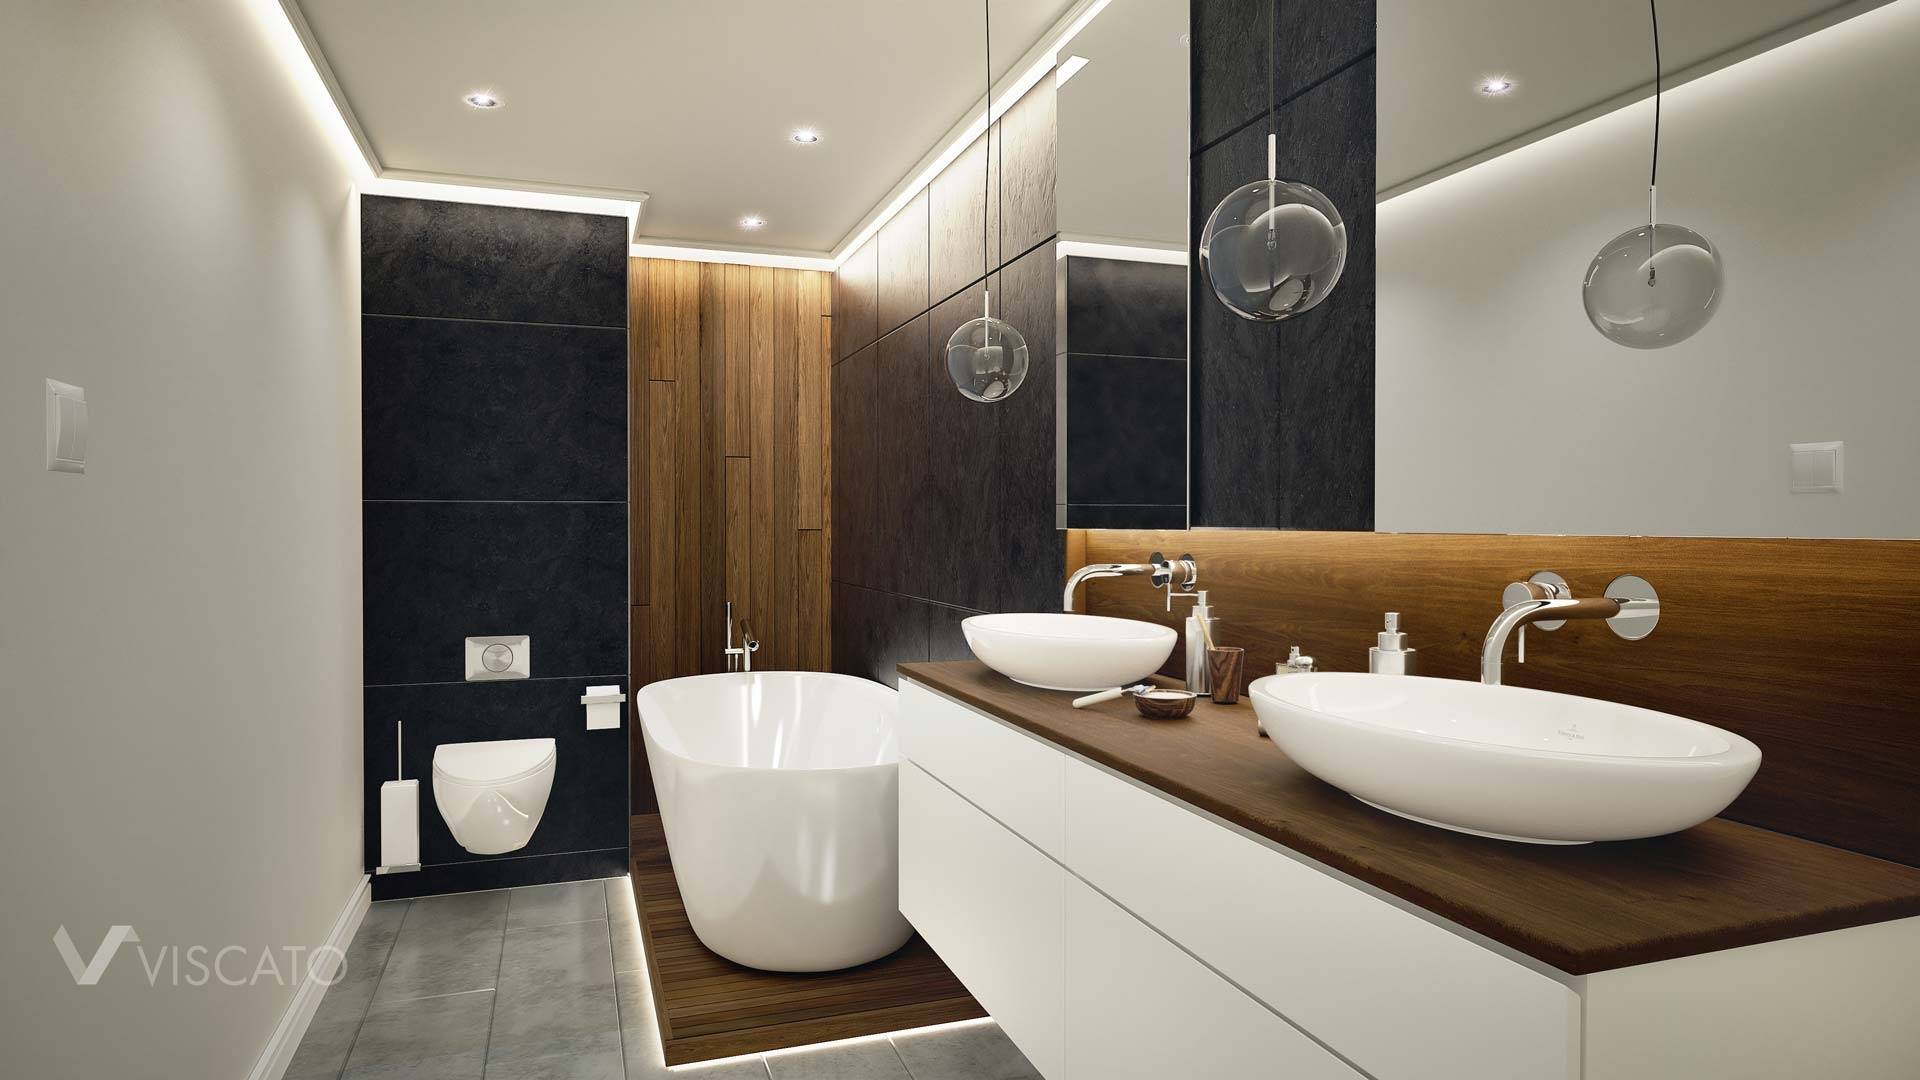 3D visualization of a luxurious bathroom, Viscato